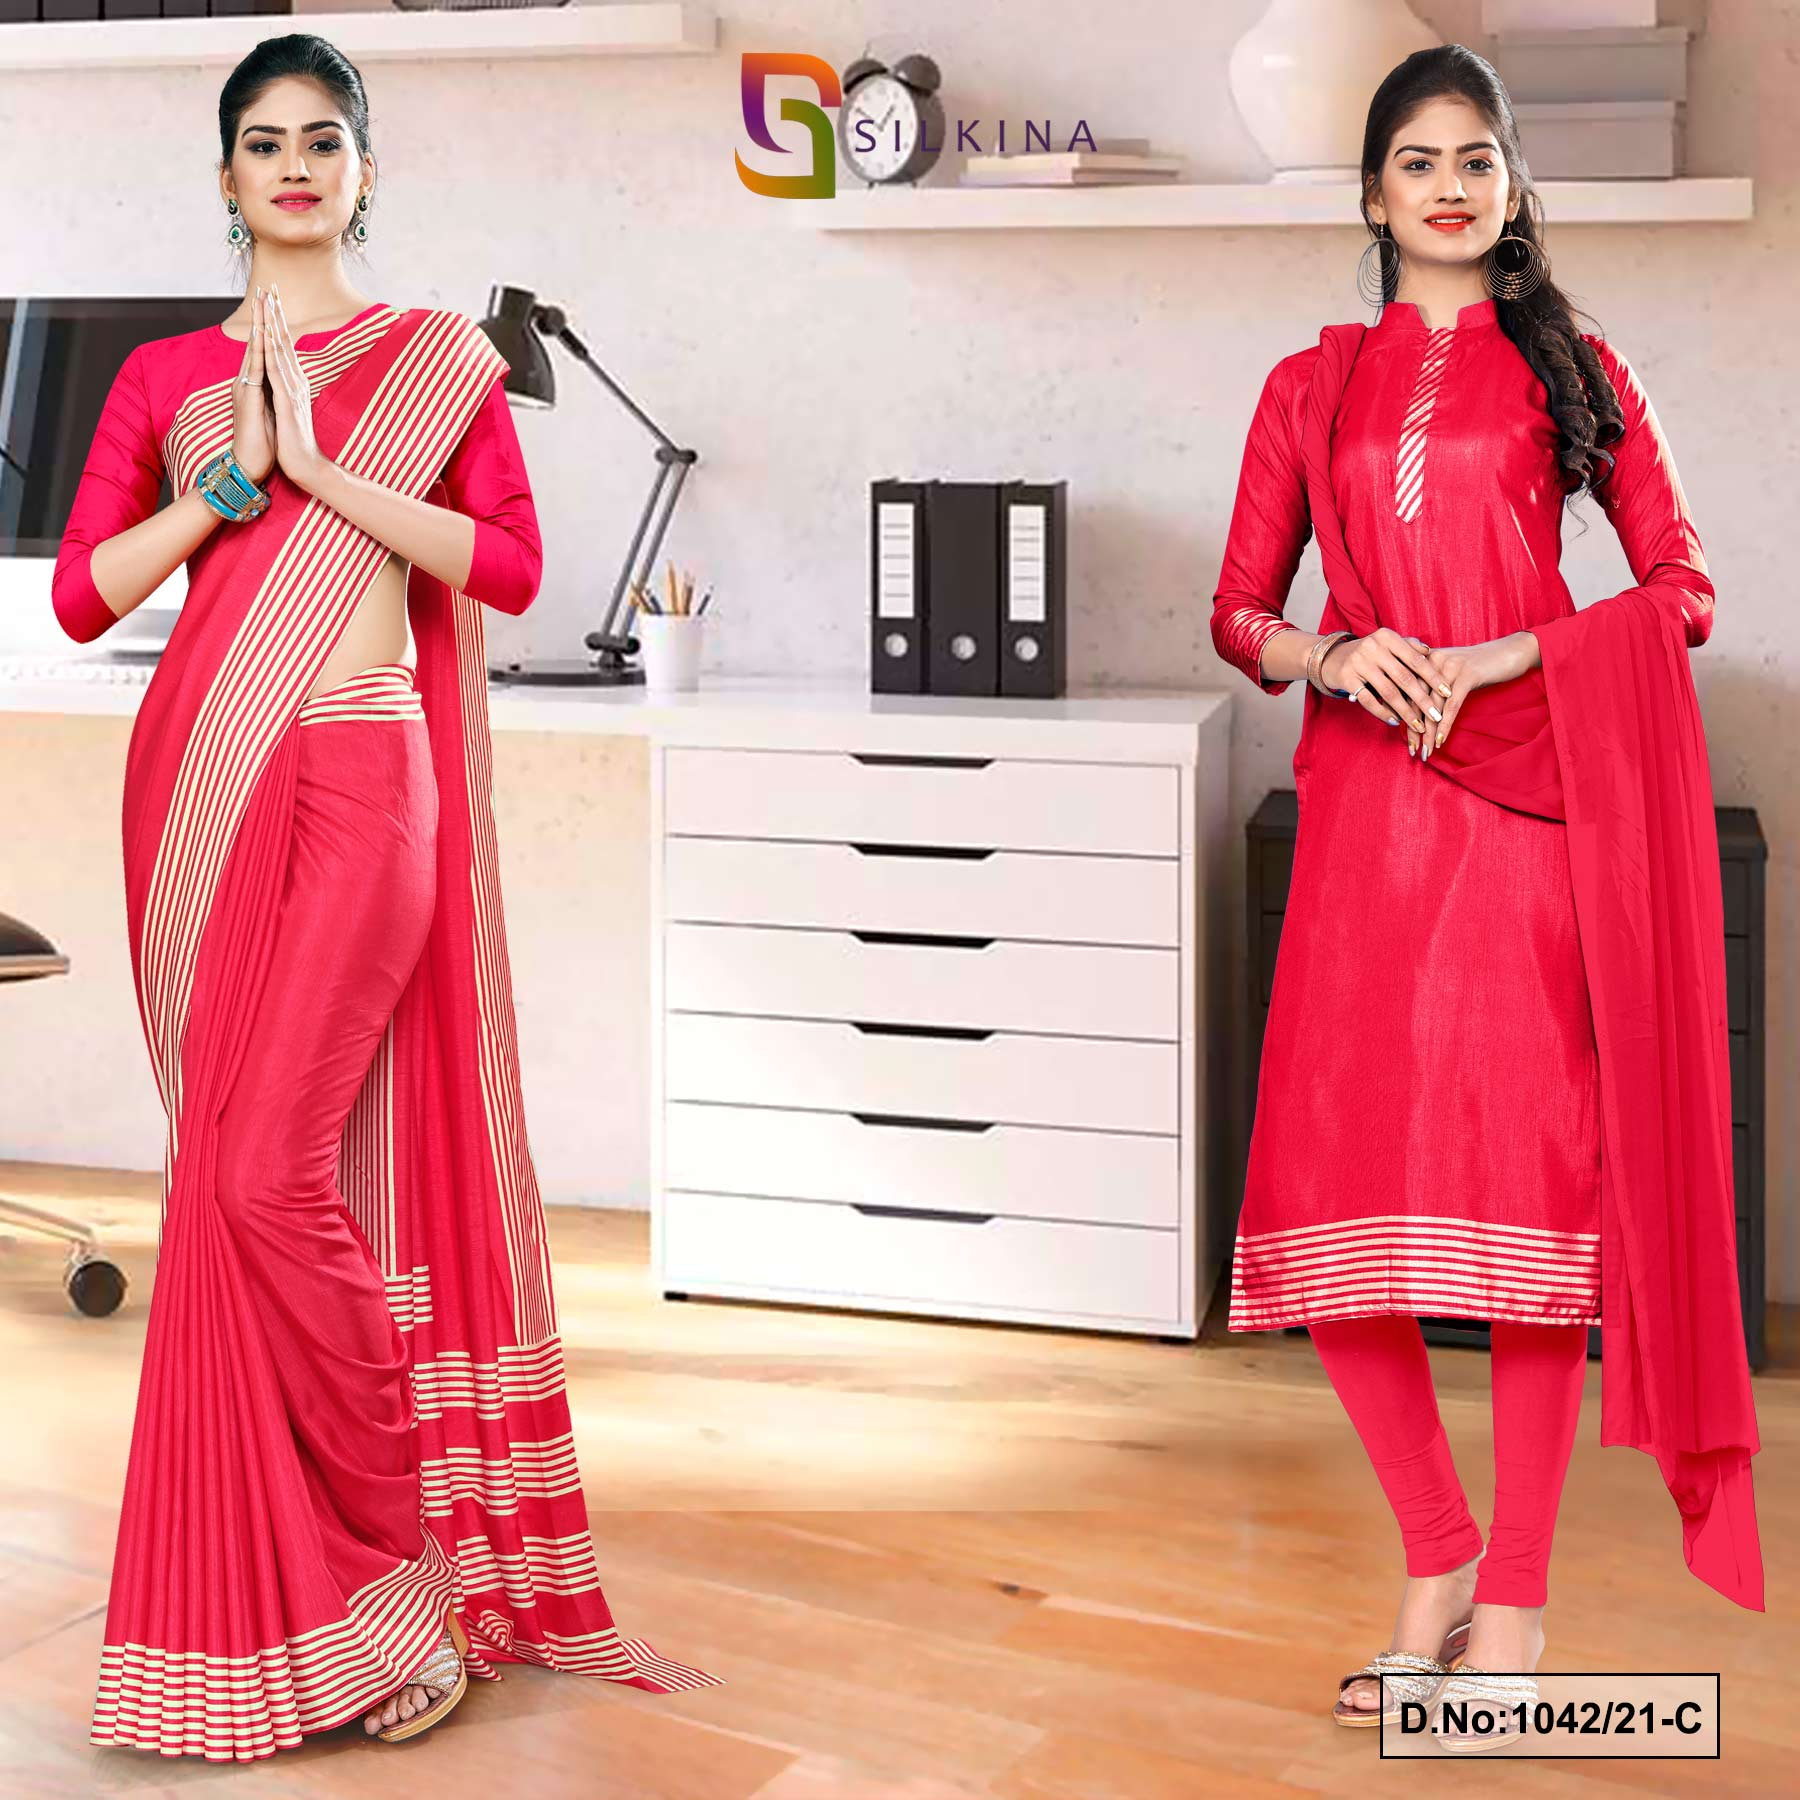 Carrot Pink Plain Border Premium Polycotton Raw Silk Saree Salwar Combo for Employee Uniform Sarees